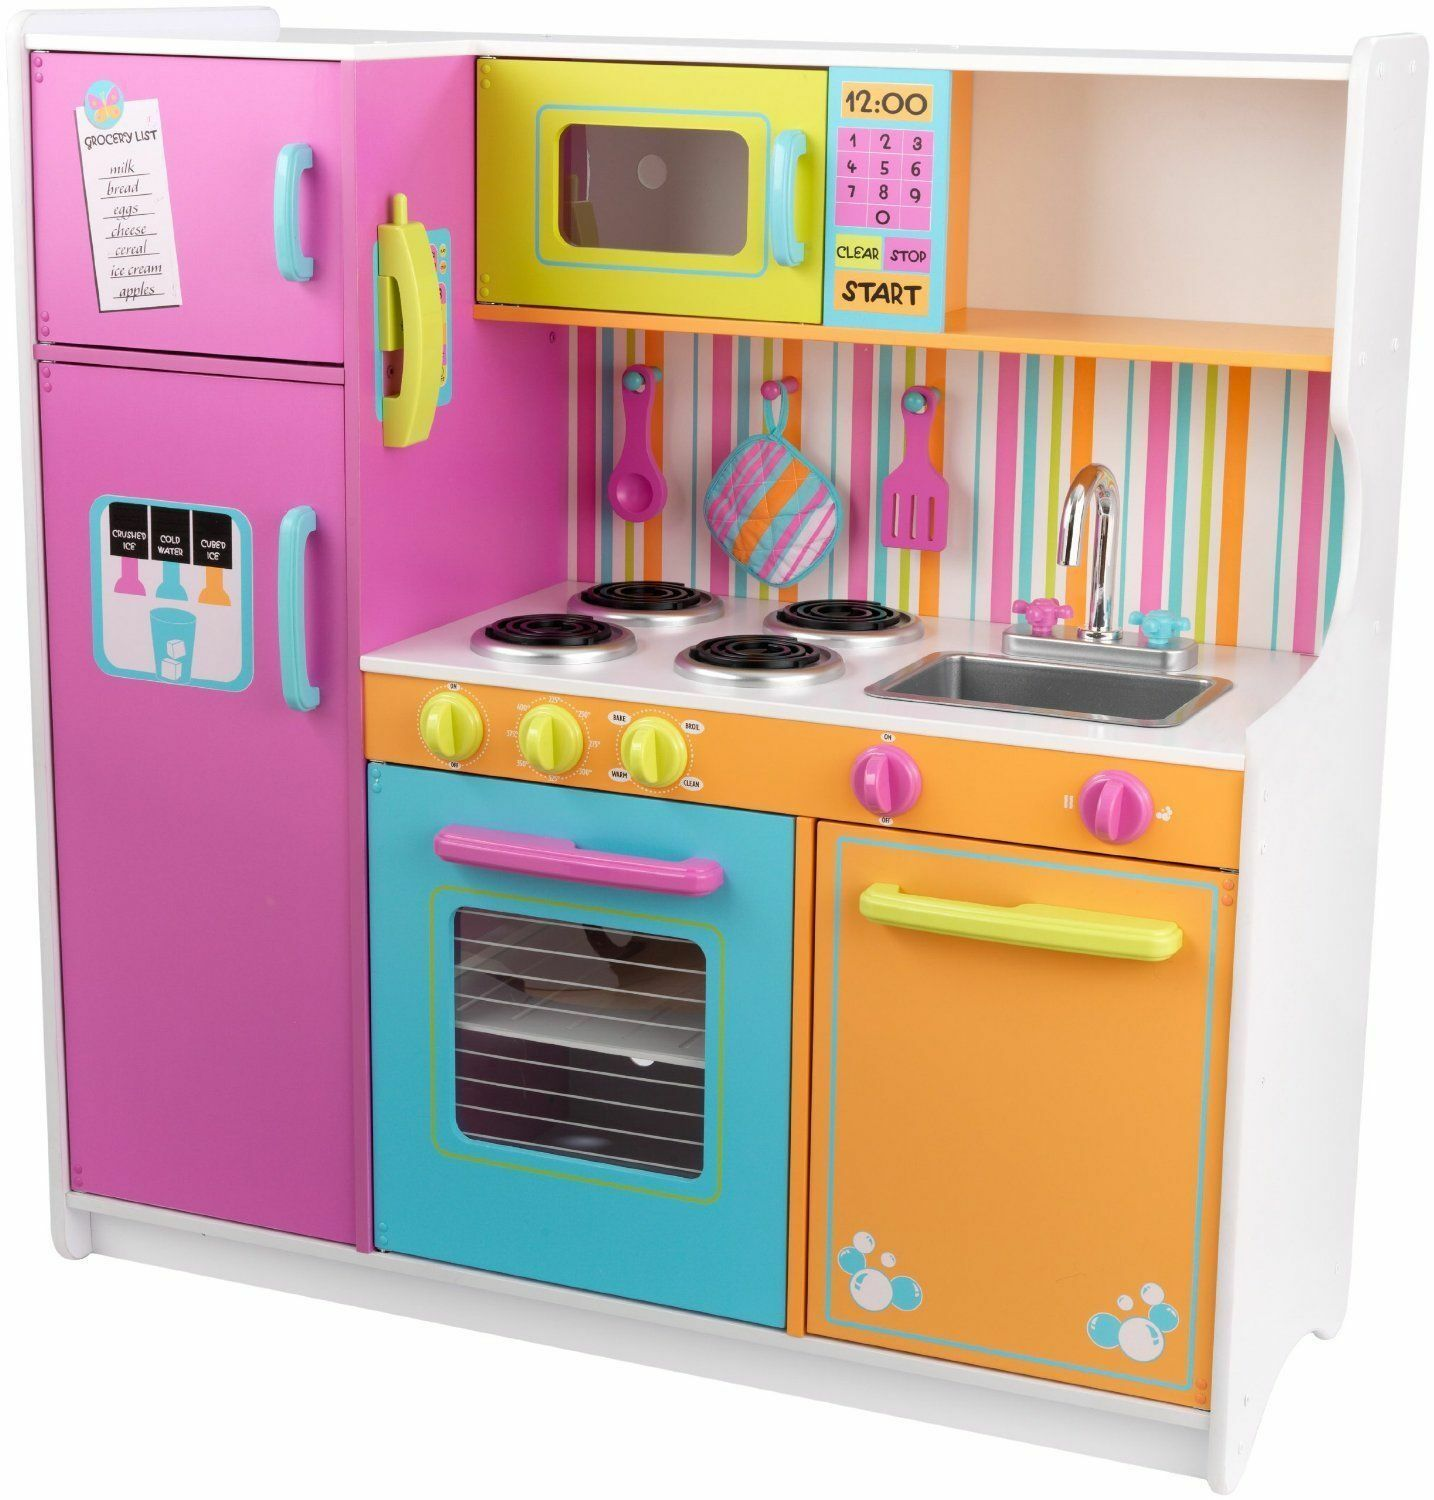 Kidkraft Küche Espresso Top 10 Wooden Kitchens For Kids